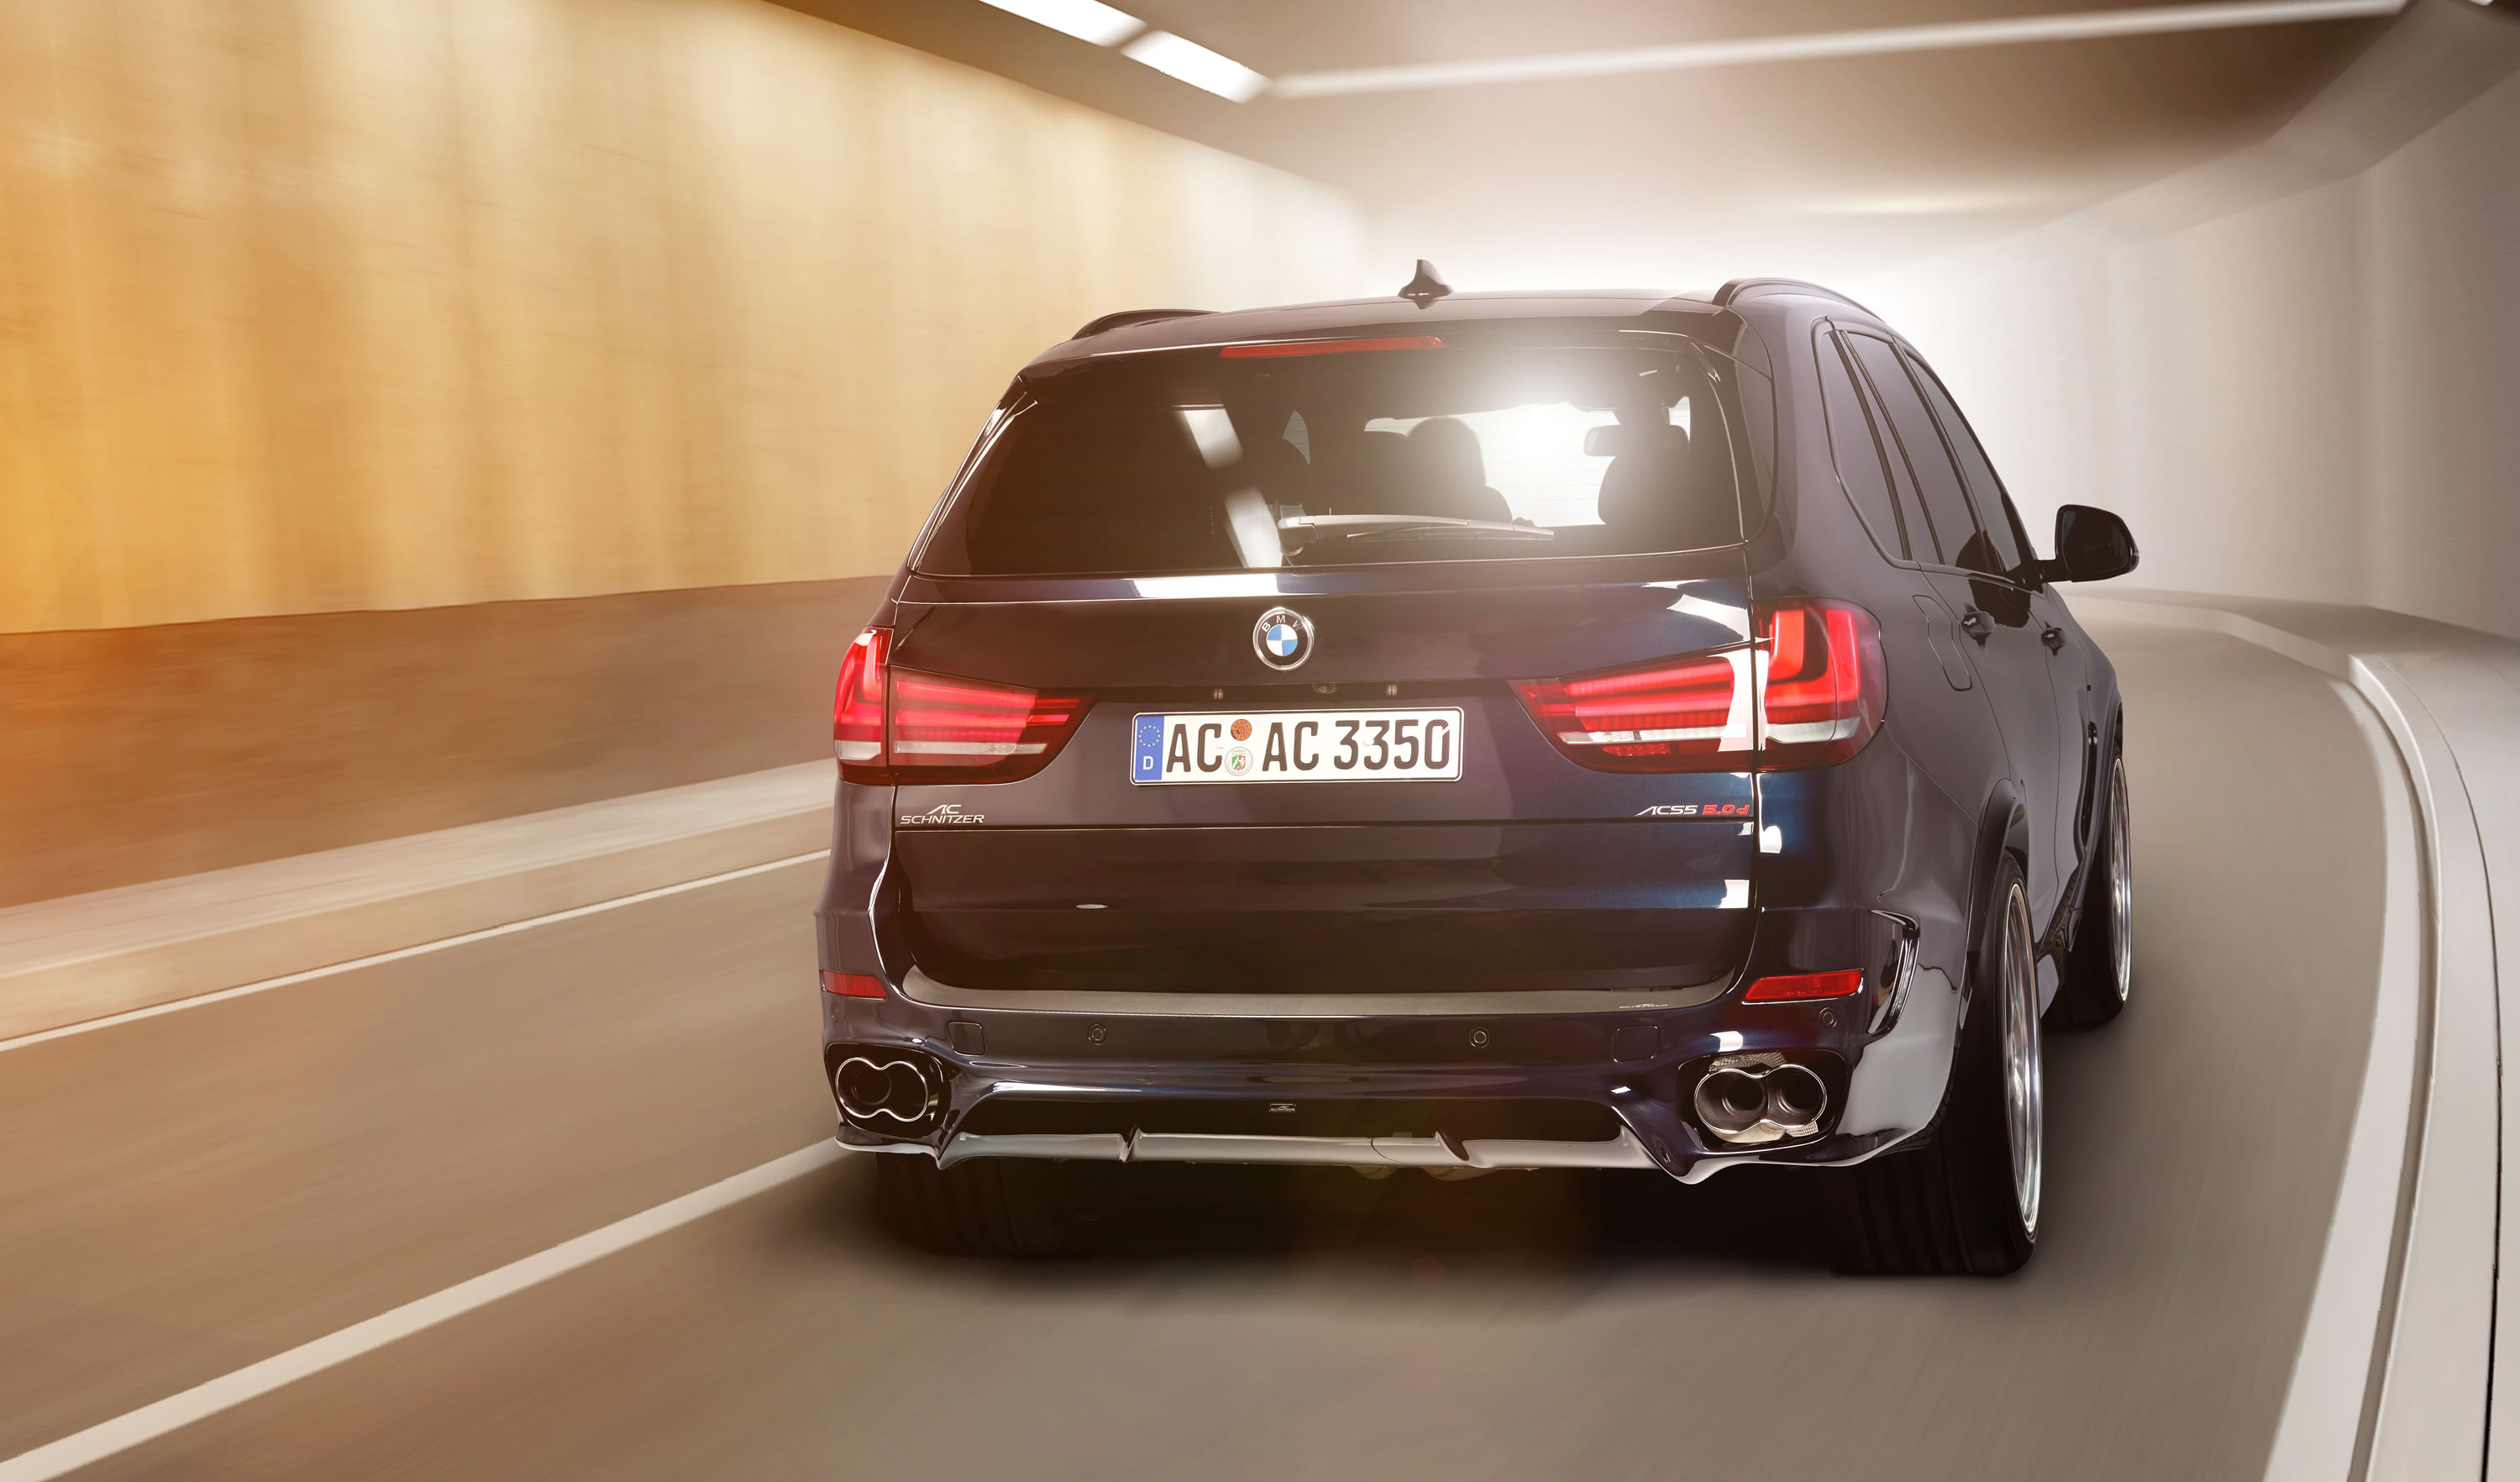 2014 Bmw X5 M50d By Ac Schnitzer Photos Specs And Review Rs